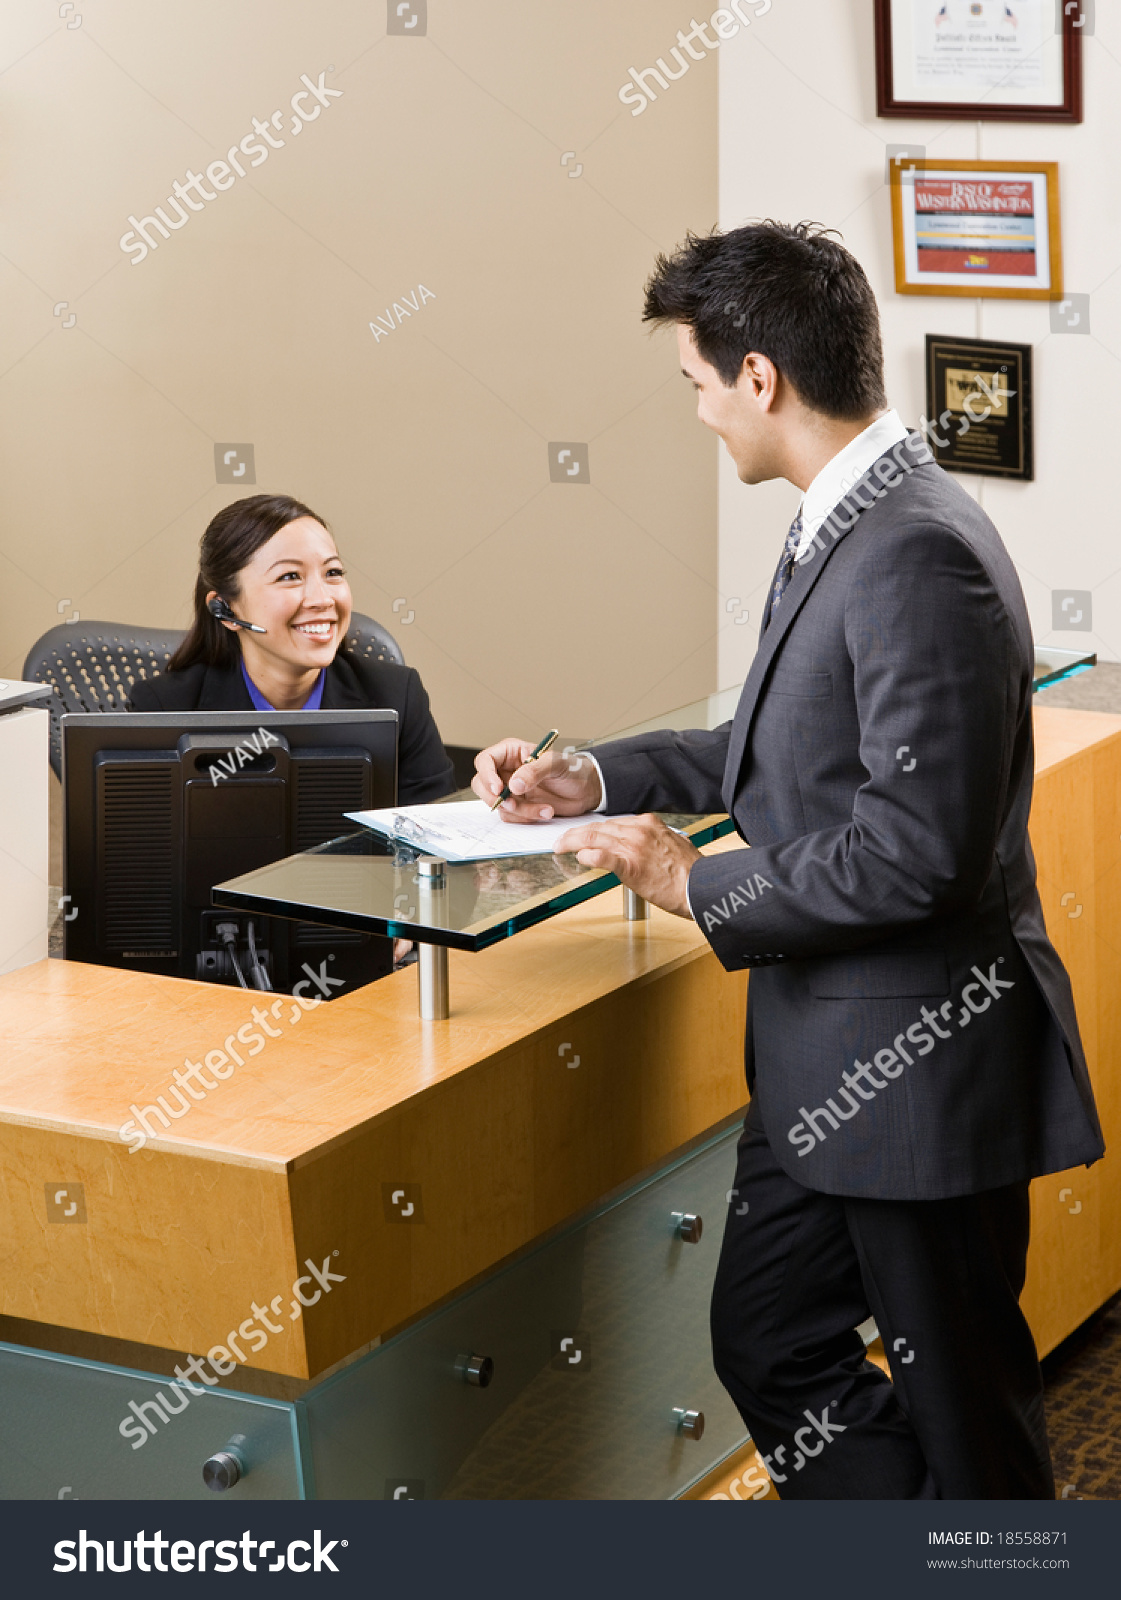 friendly receptionist greeting man at front desk stock photo friendly receptionist greeting man at front desk preview save to a lightbox